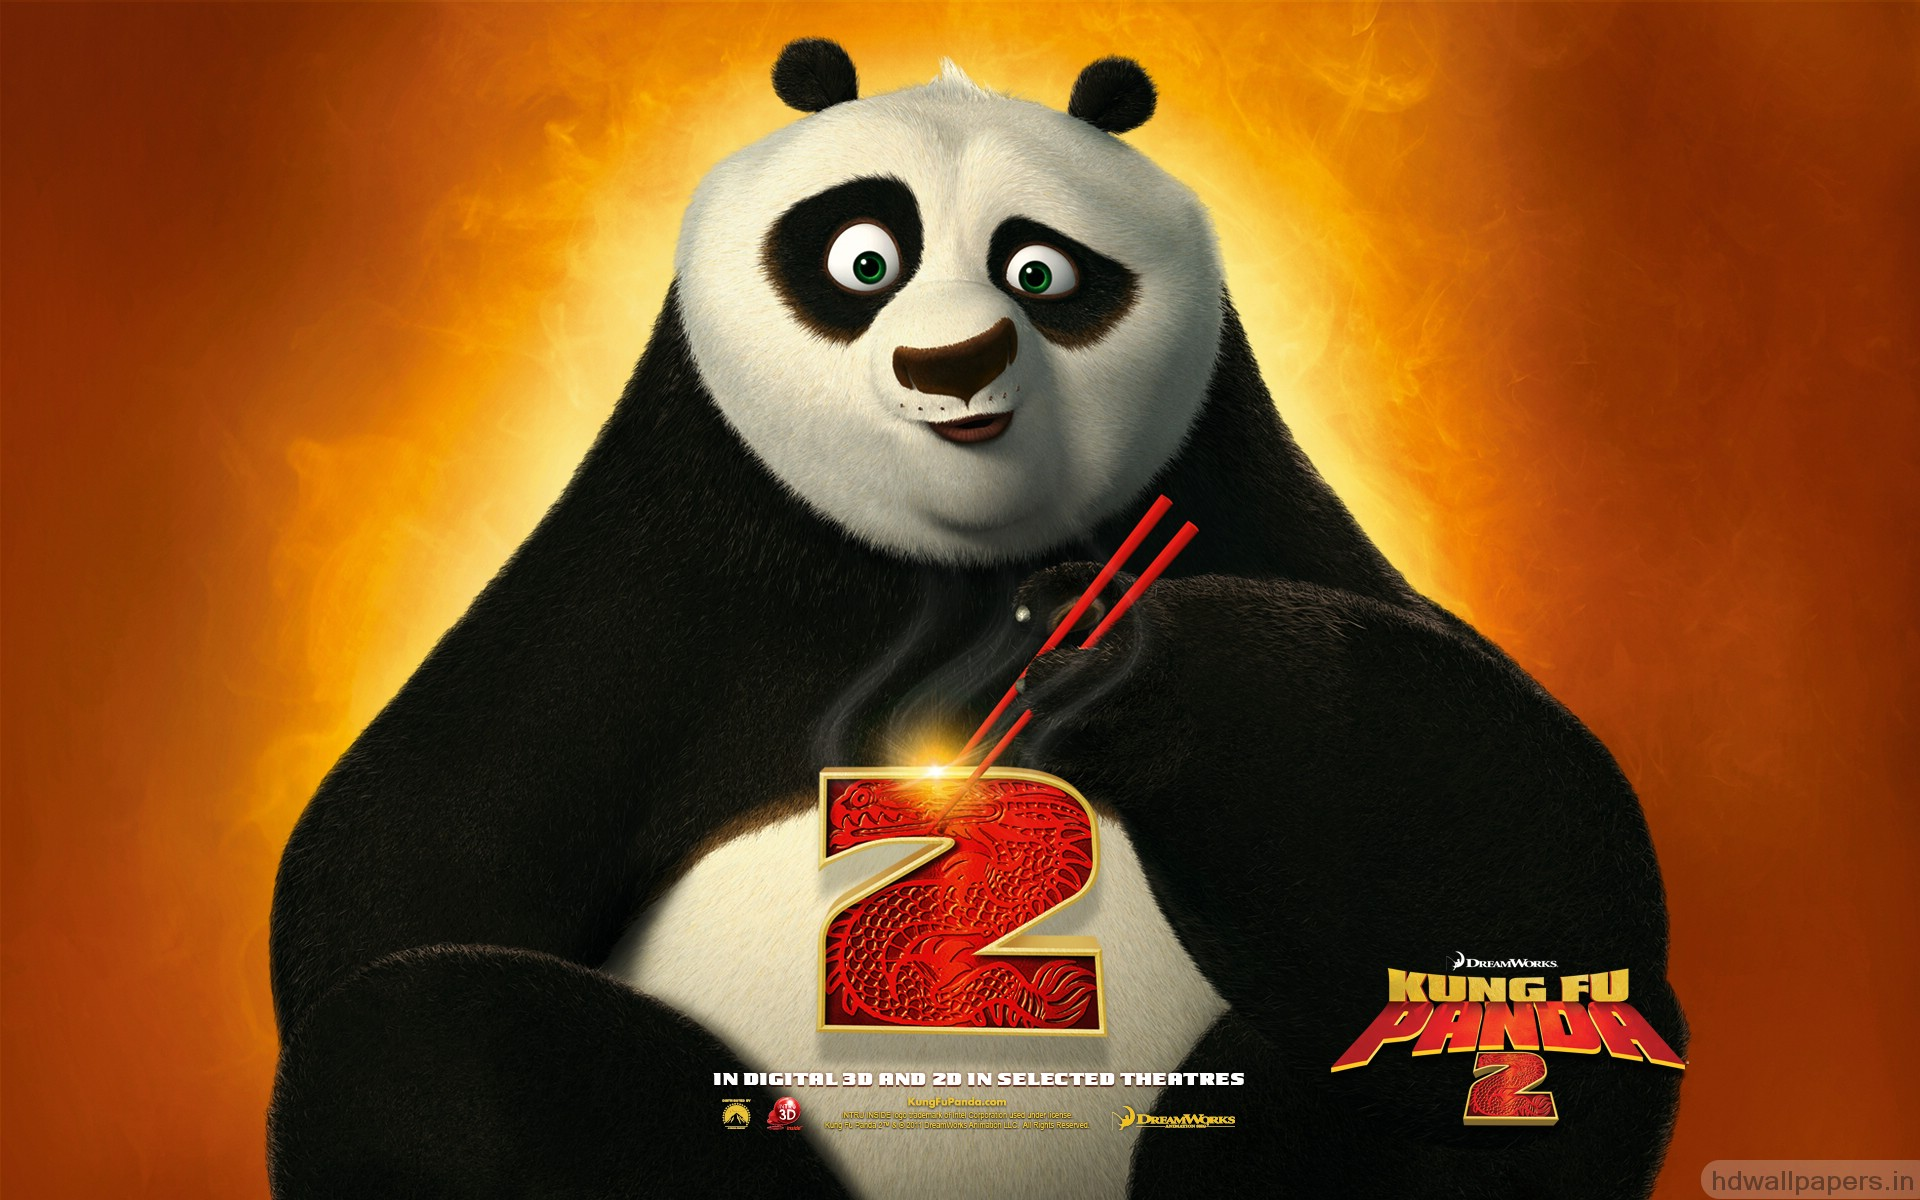 2011 Kung Fu Panda 2 Movie 929.67 Kb